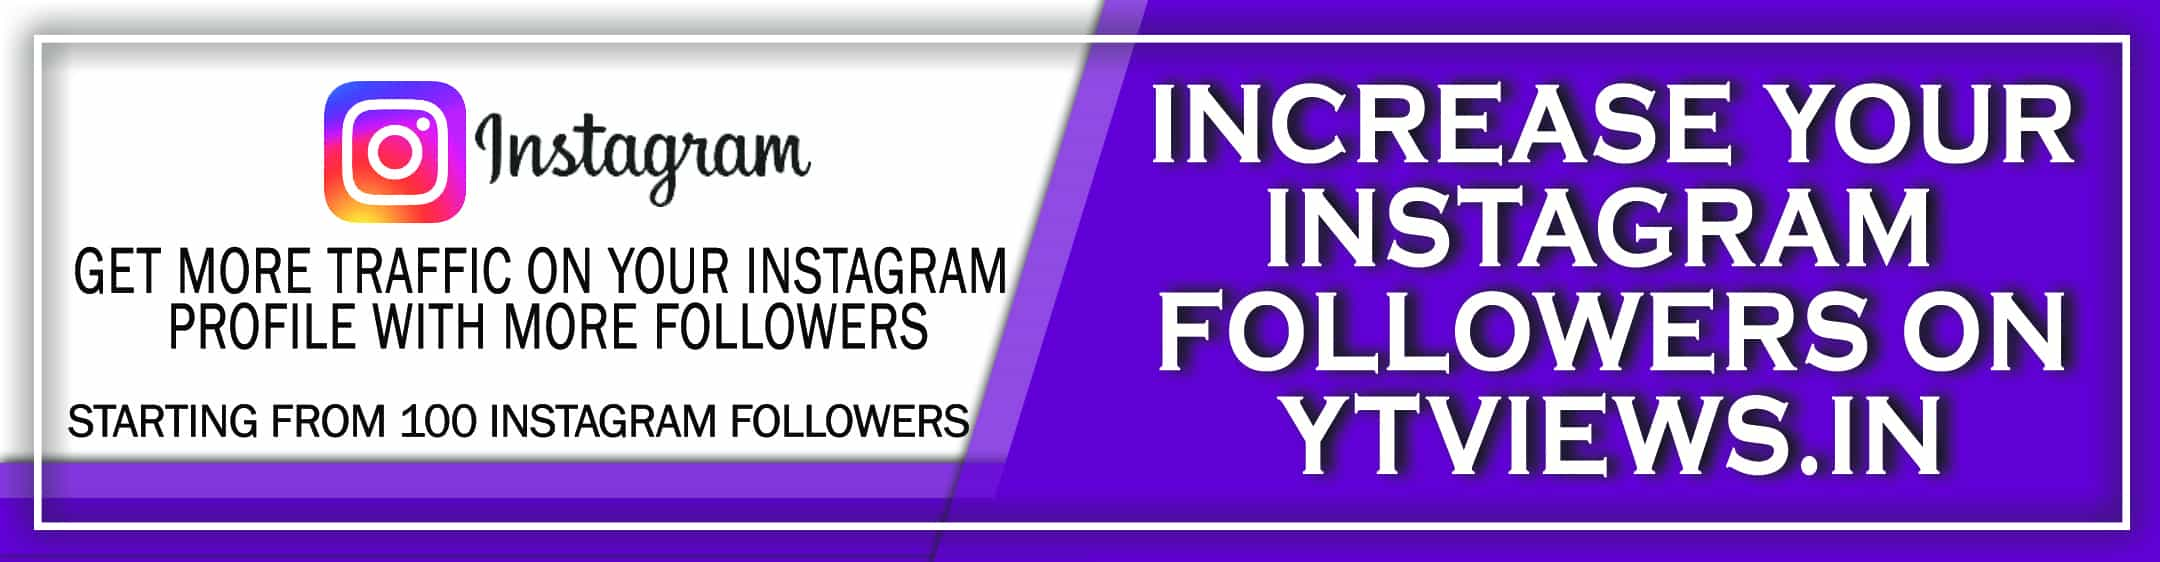 Buy Real Instagram Followers India-HQ IG services starting Rs 55